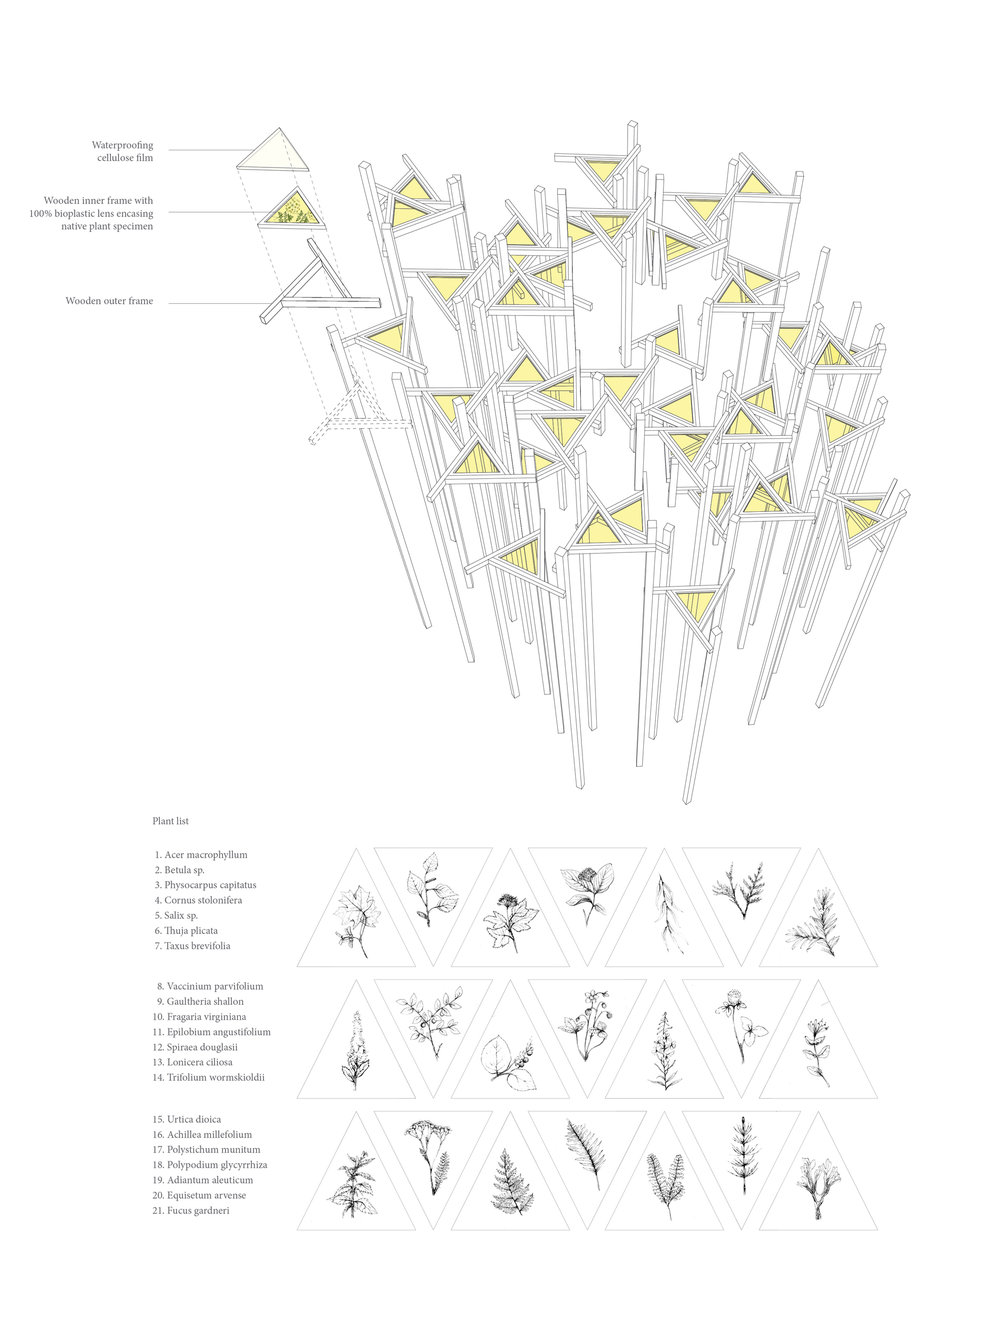 Sukkot Anatomy DIAGRAMS 1875x2500.jpg